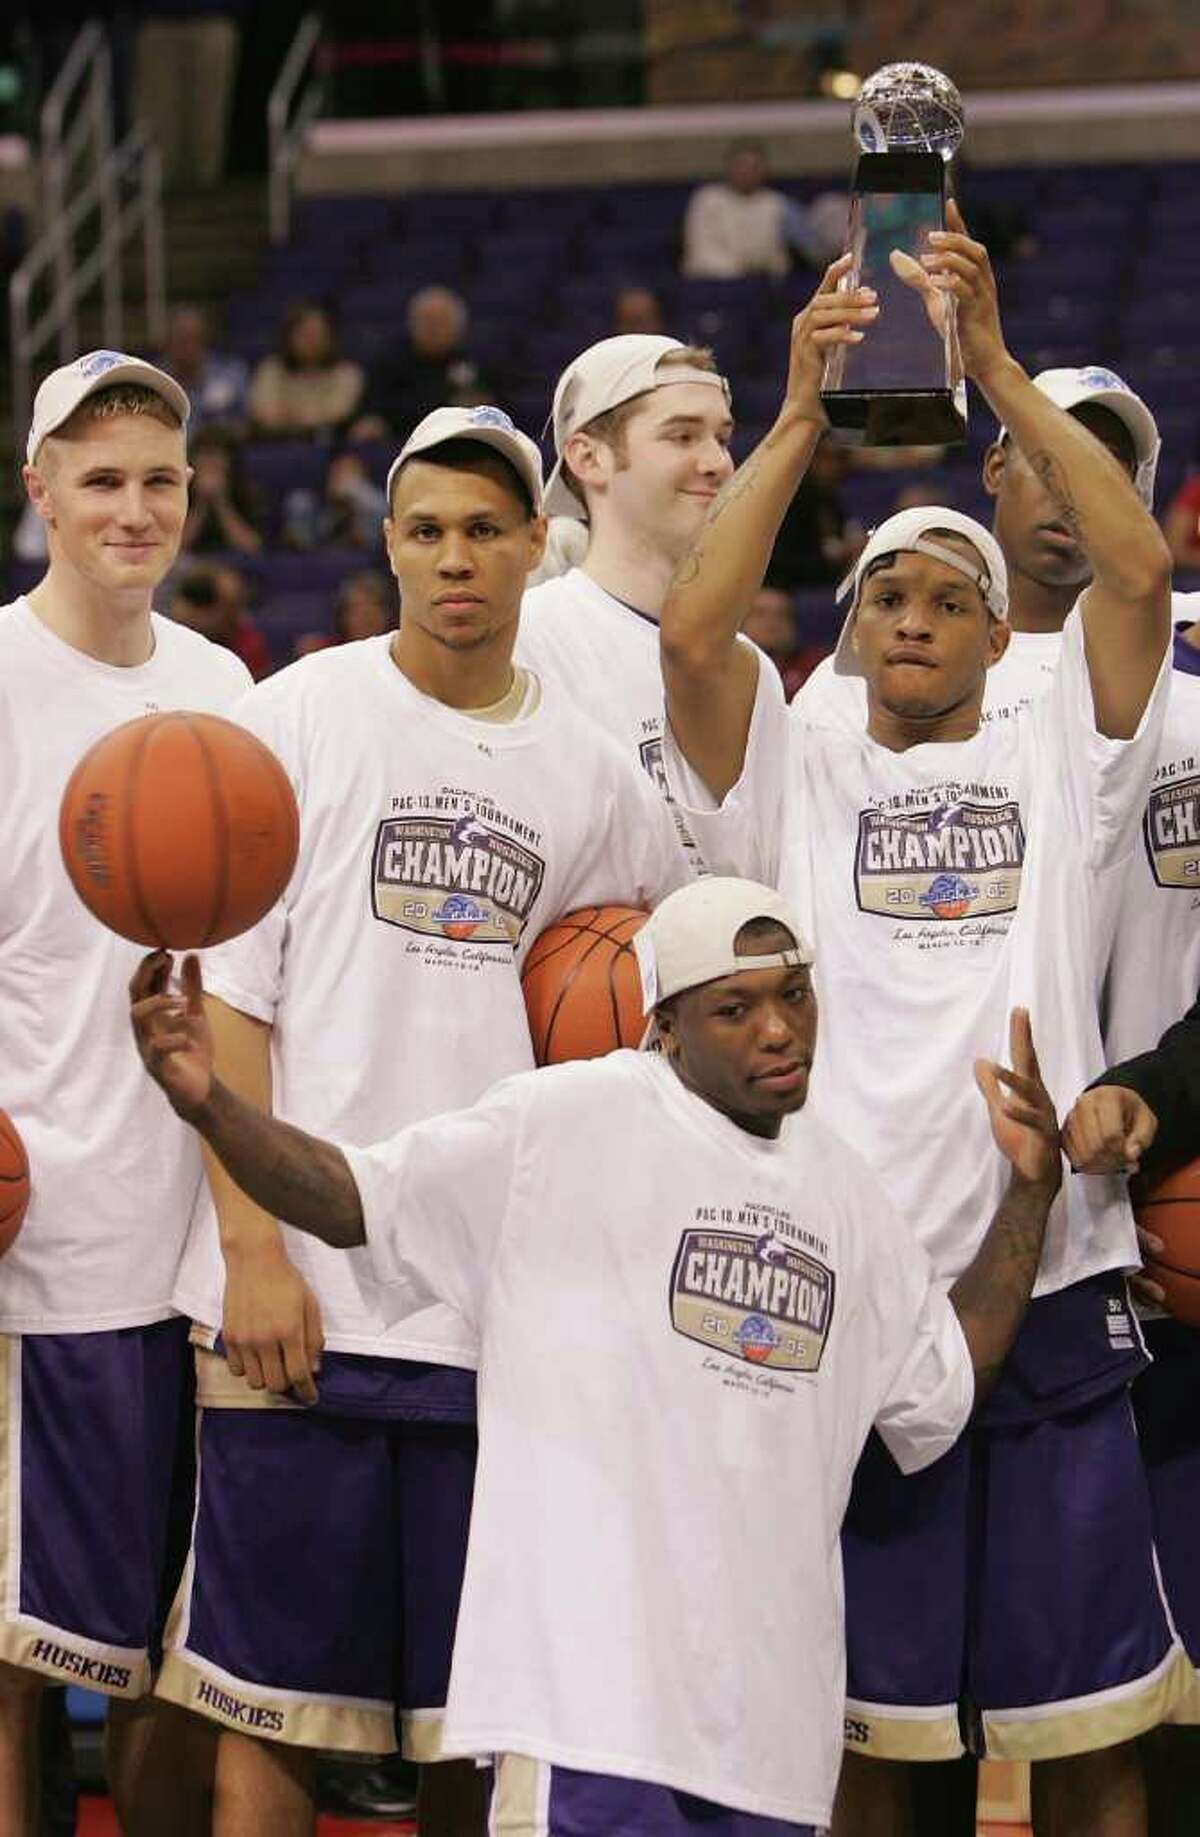 20. 2004-05 Huskies basketball Although the March Madness run came to an end too early, the '05 Huskies earned a No. 1 seed, and are remembered as one of the most talented teams in the Lorenzo Romar era. Washington was led by Will Conroy and Nate Robinson, and had key contributors in Bobby Jones and Brandon Roy, compiling a 29-6 record with a 14-4 mark in conference play. The top-seed selection -- the first in program history -- came after the Huskies defeated a talented Arizona team in the Pac-10 tournament championship. After beating Montana and Pacific in the first two rounds of the NCAA Tournament, the Huskies fell to Louisville in the Sweet 16 and finished the season at No. 8 in the AP poll.